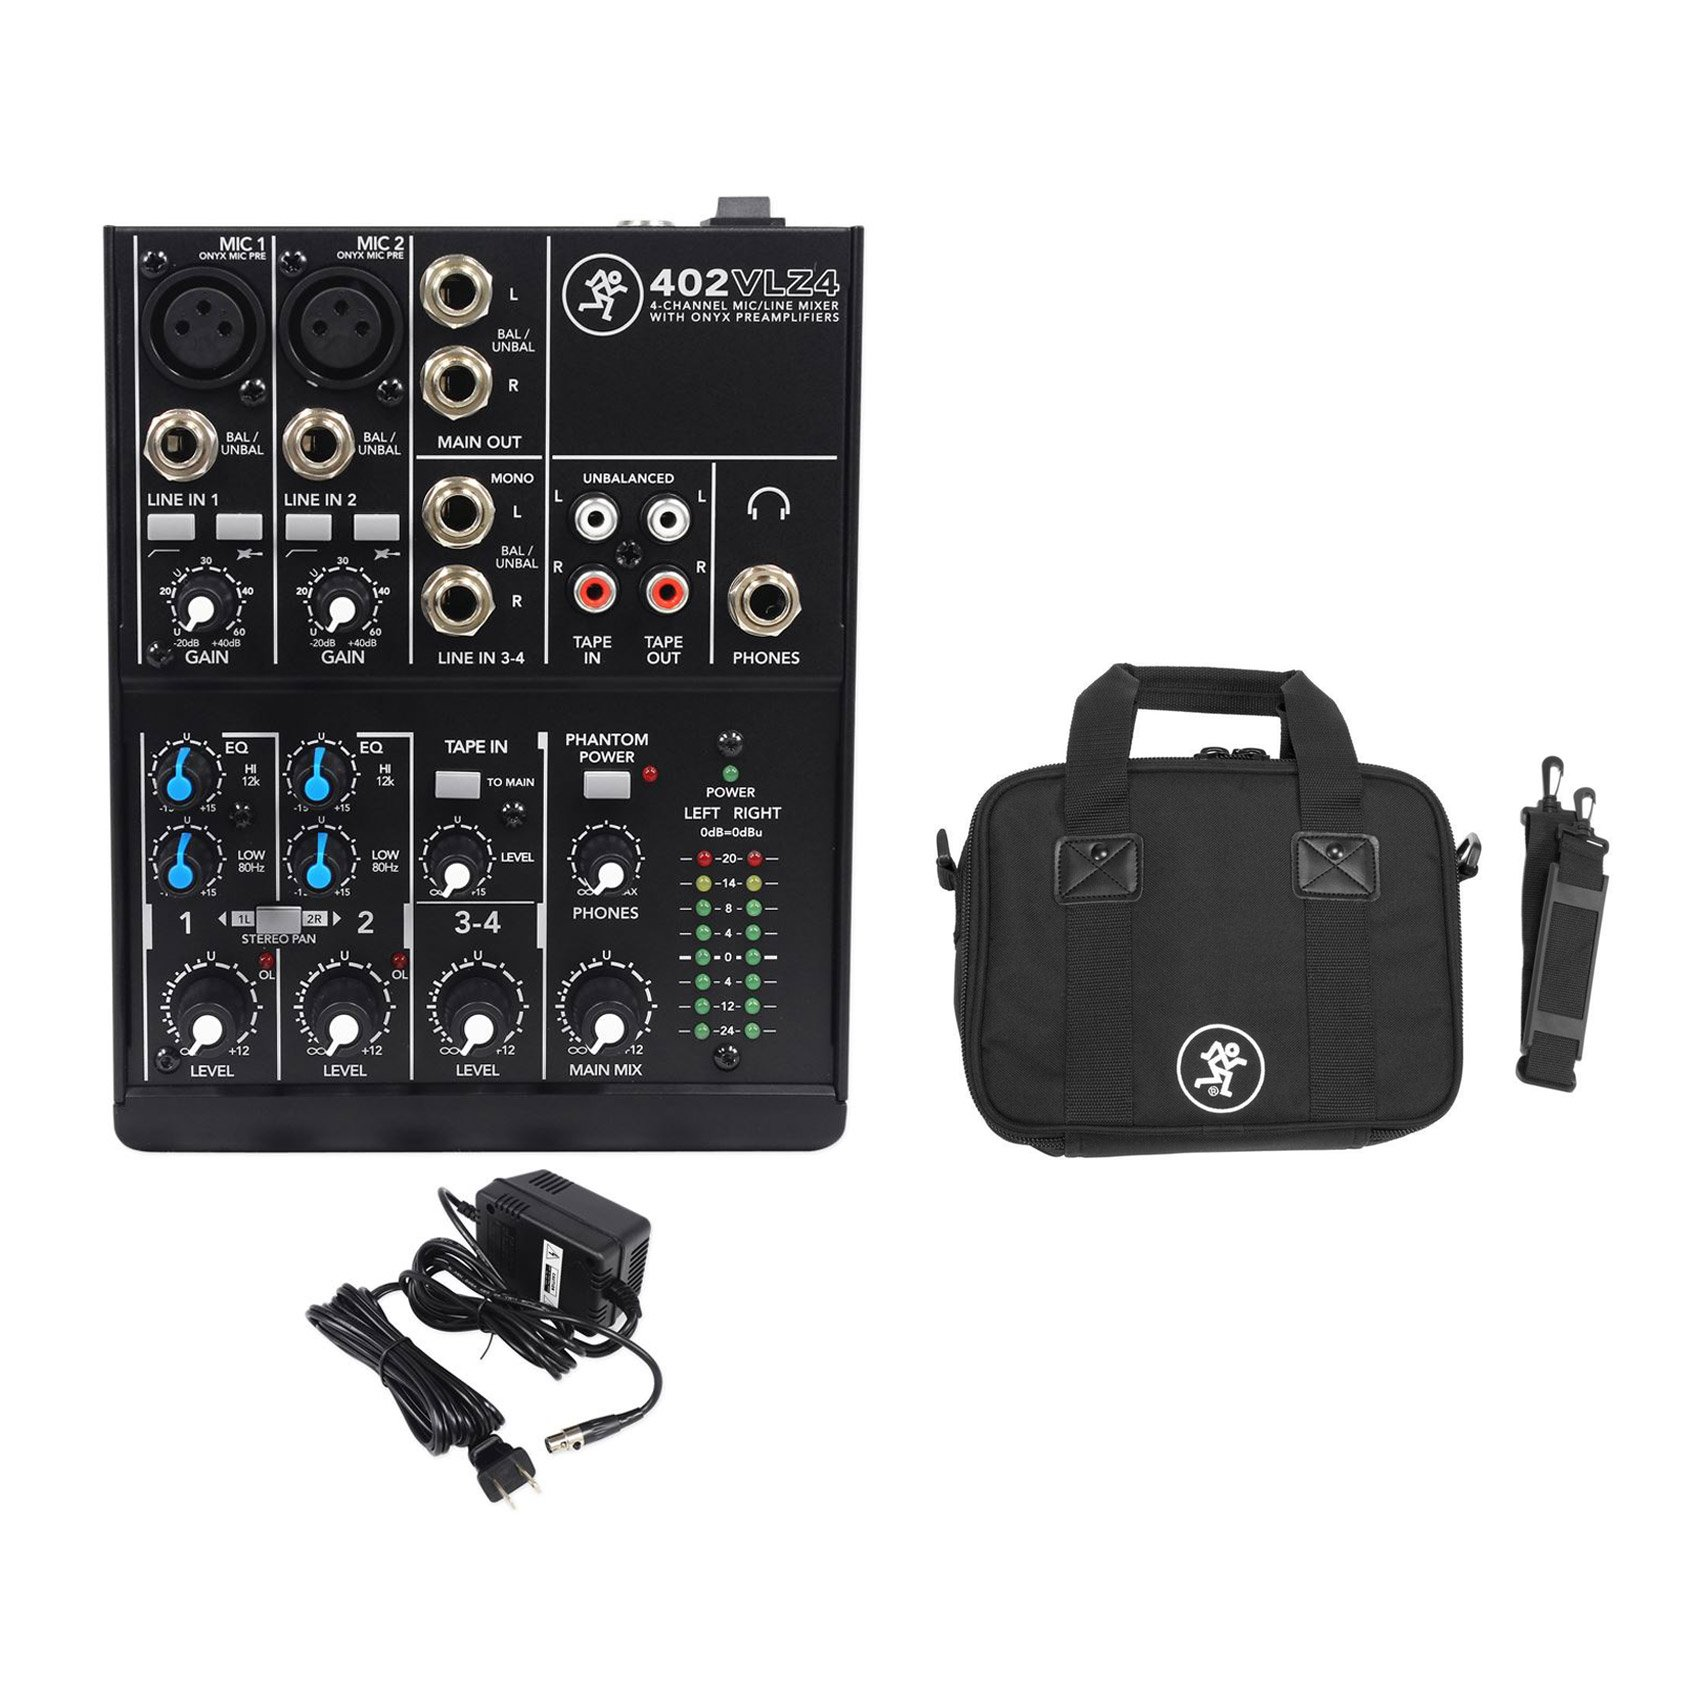 New! Mackie 402VLZ4 4-ch. Compact Analog Low-Noise Mixer w/ 2 ONYX Preamps + Bag